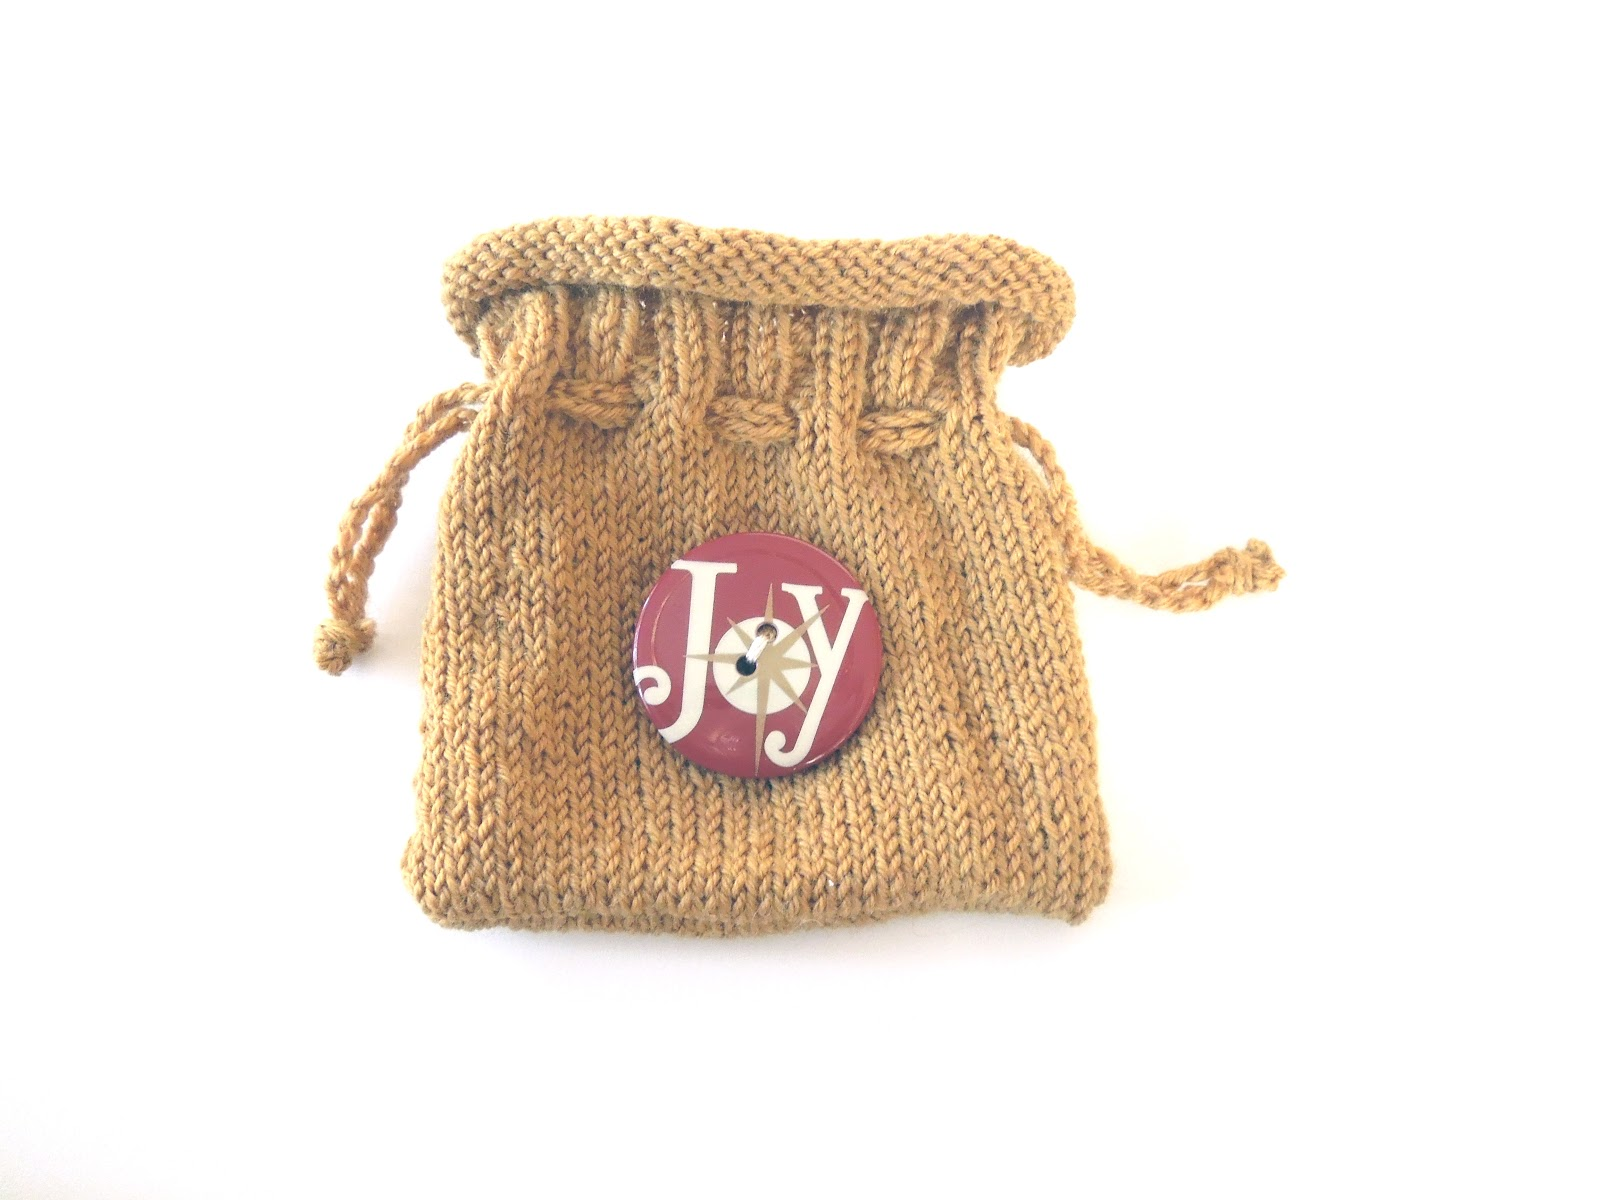 Knitting Gifts : The Creative Skein: Little Knitted Gift Bags